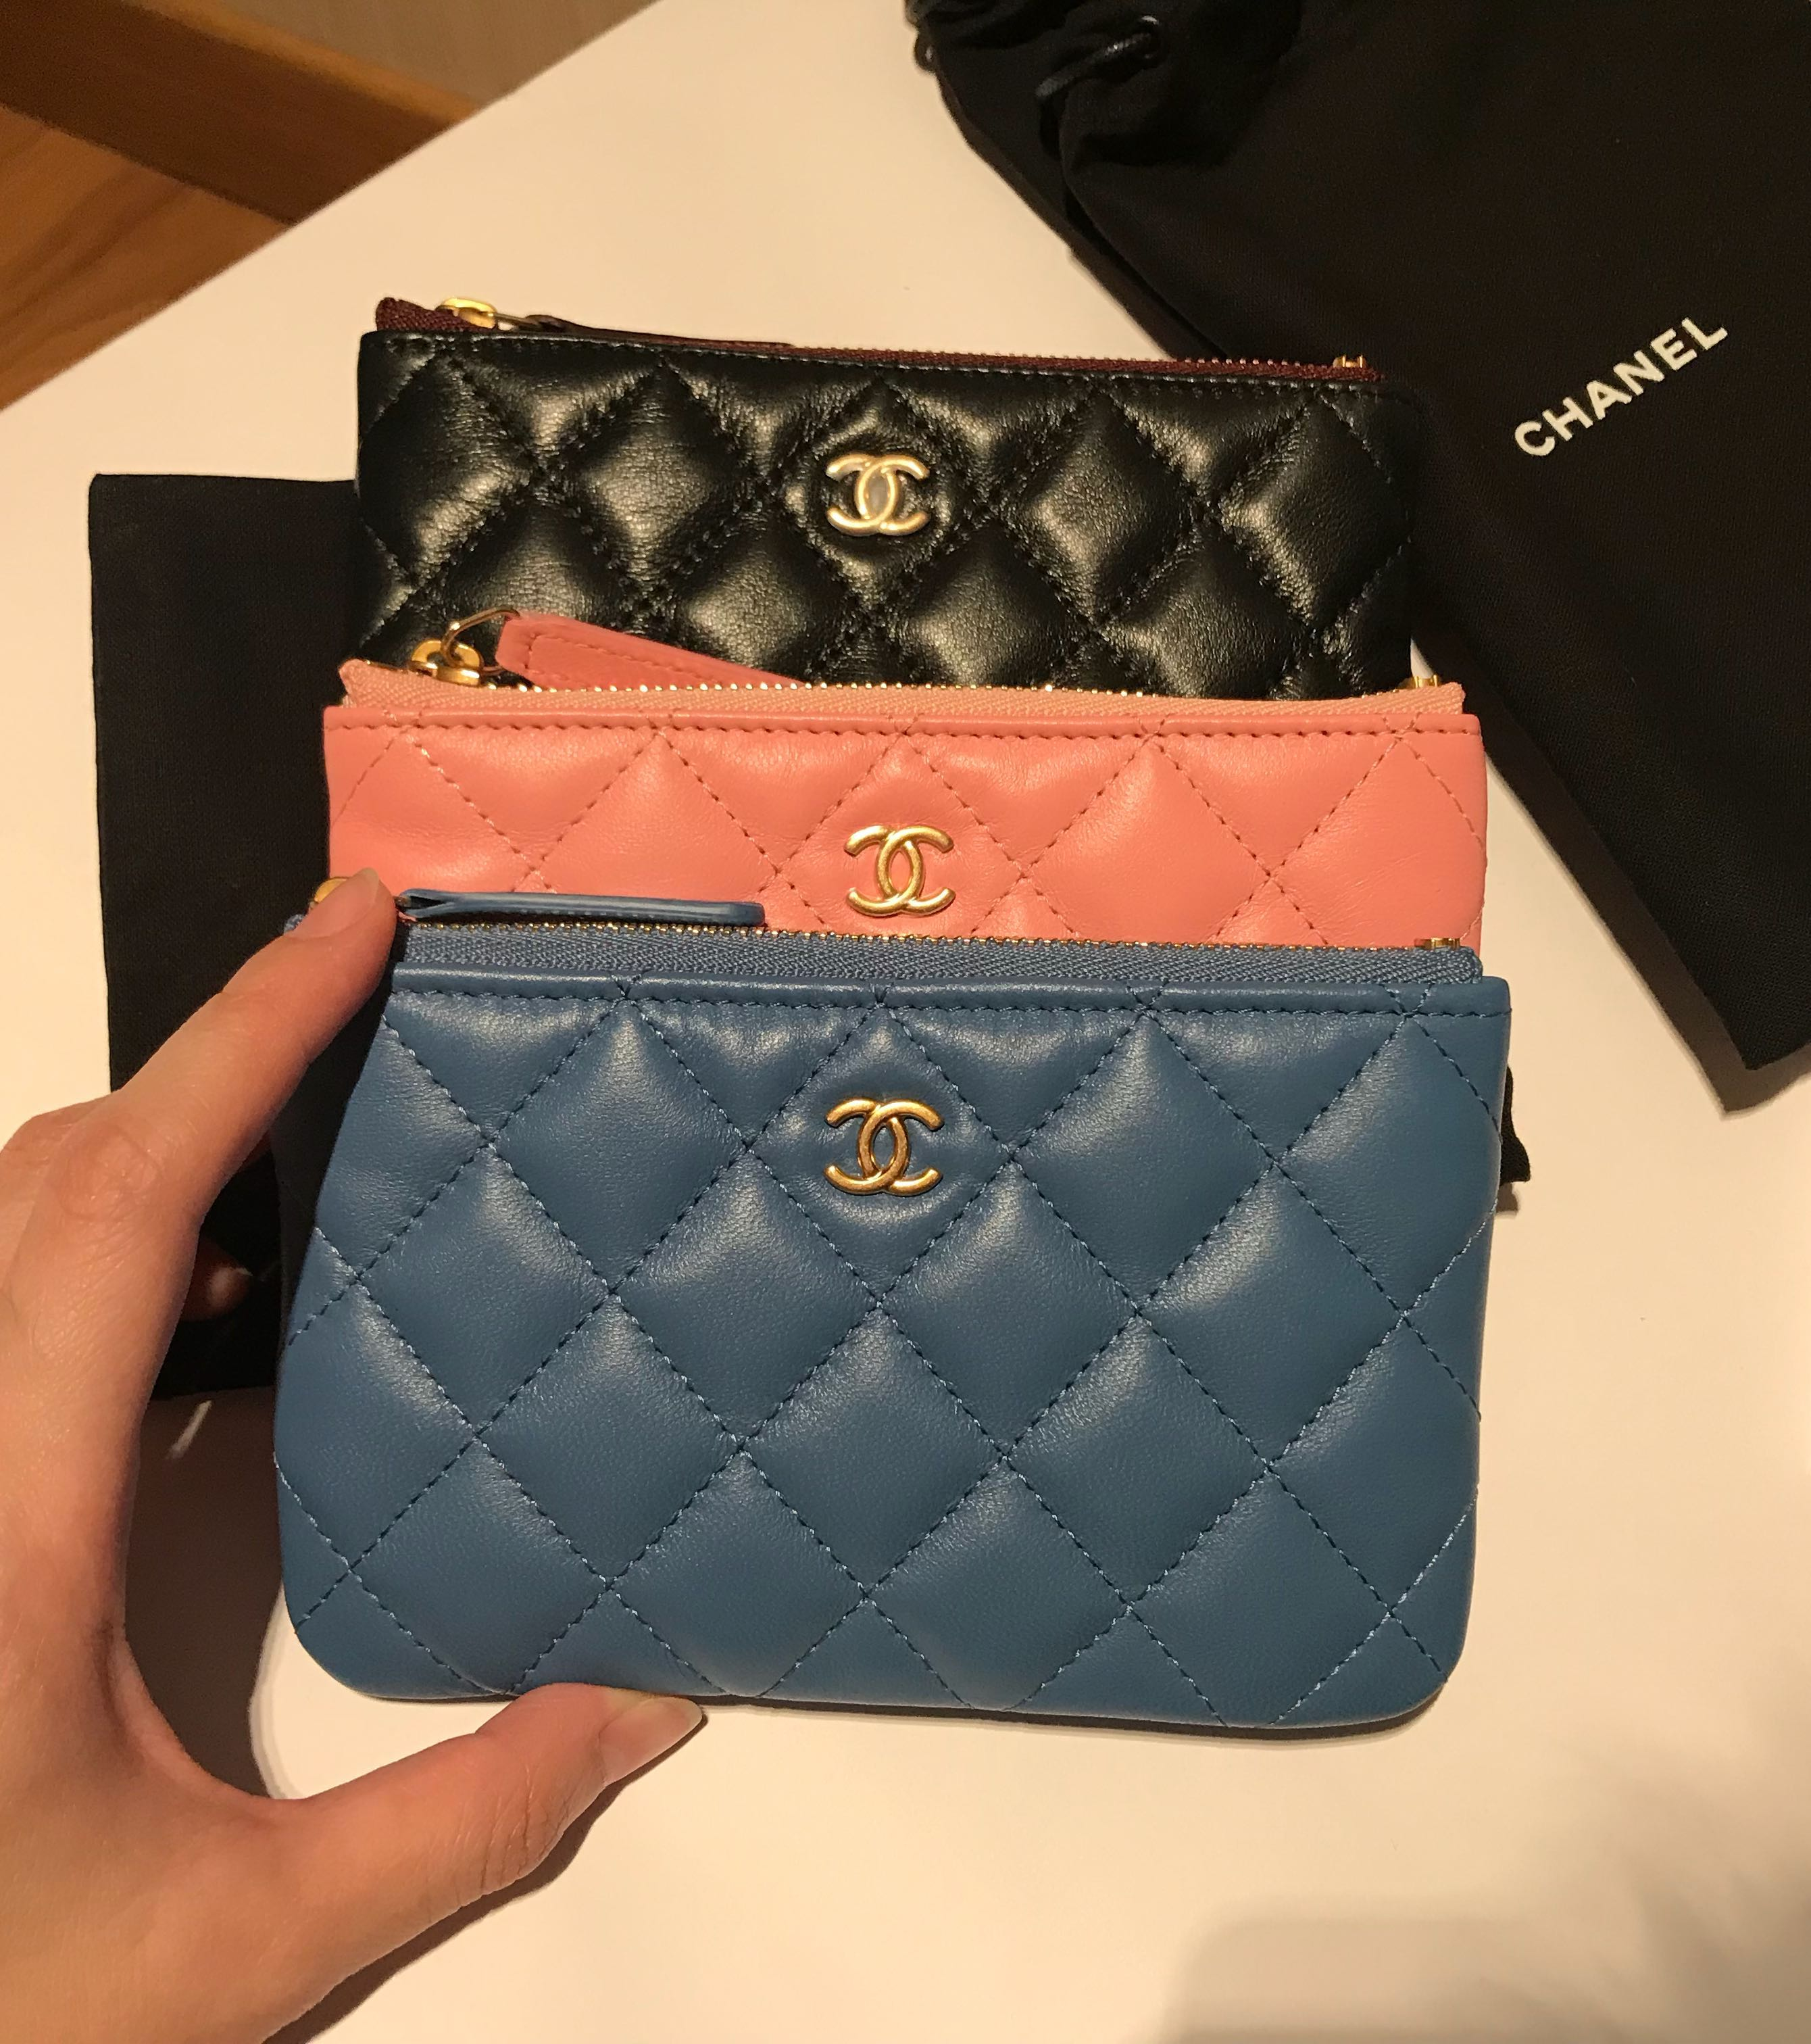 5285191d7ada 💖NEW💖RARE 19S Chanel Mini O Case Calf Leather Ghw Pink Blue Black #27,  Luxury, Bags & Wallets, Wallets on Carousell